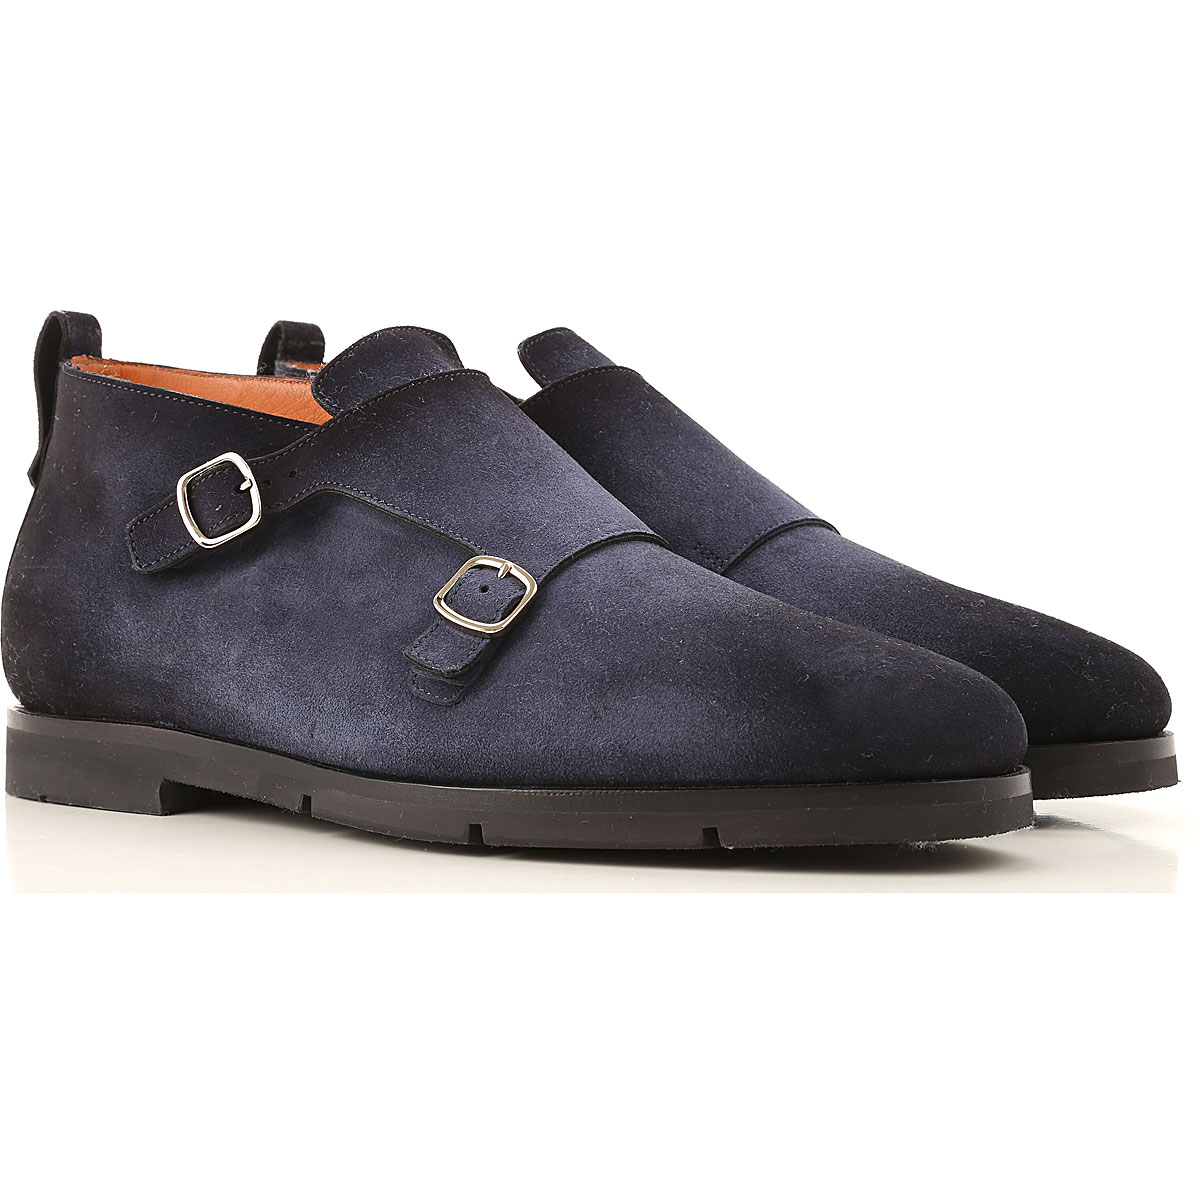 Santoni Monk Strap Shoes for Men On Sale, Midnight Blue, Suede leather, 2019, 10 11 11.5 7 8.5 9.5